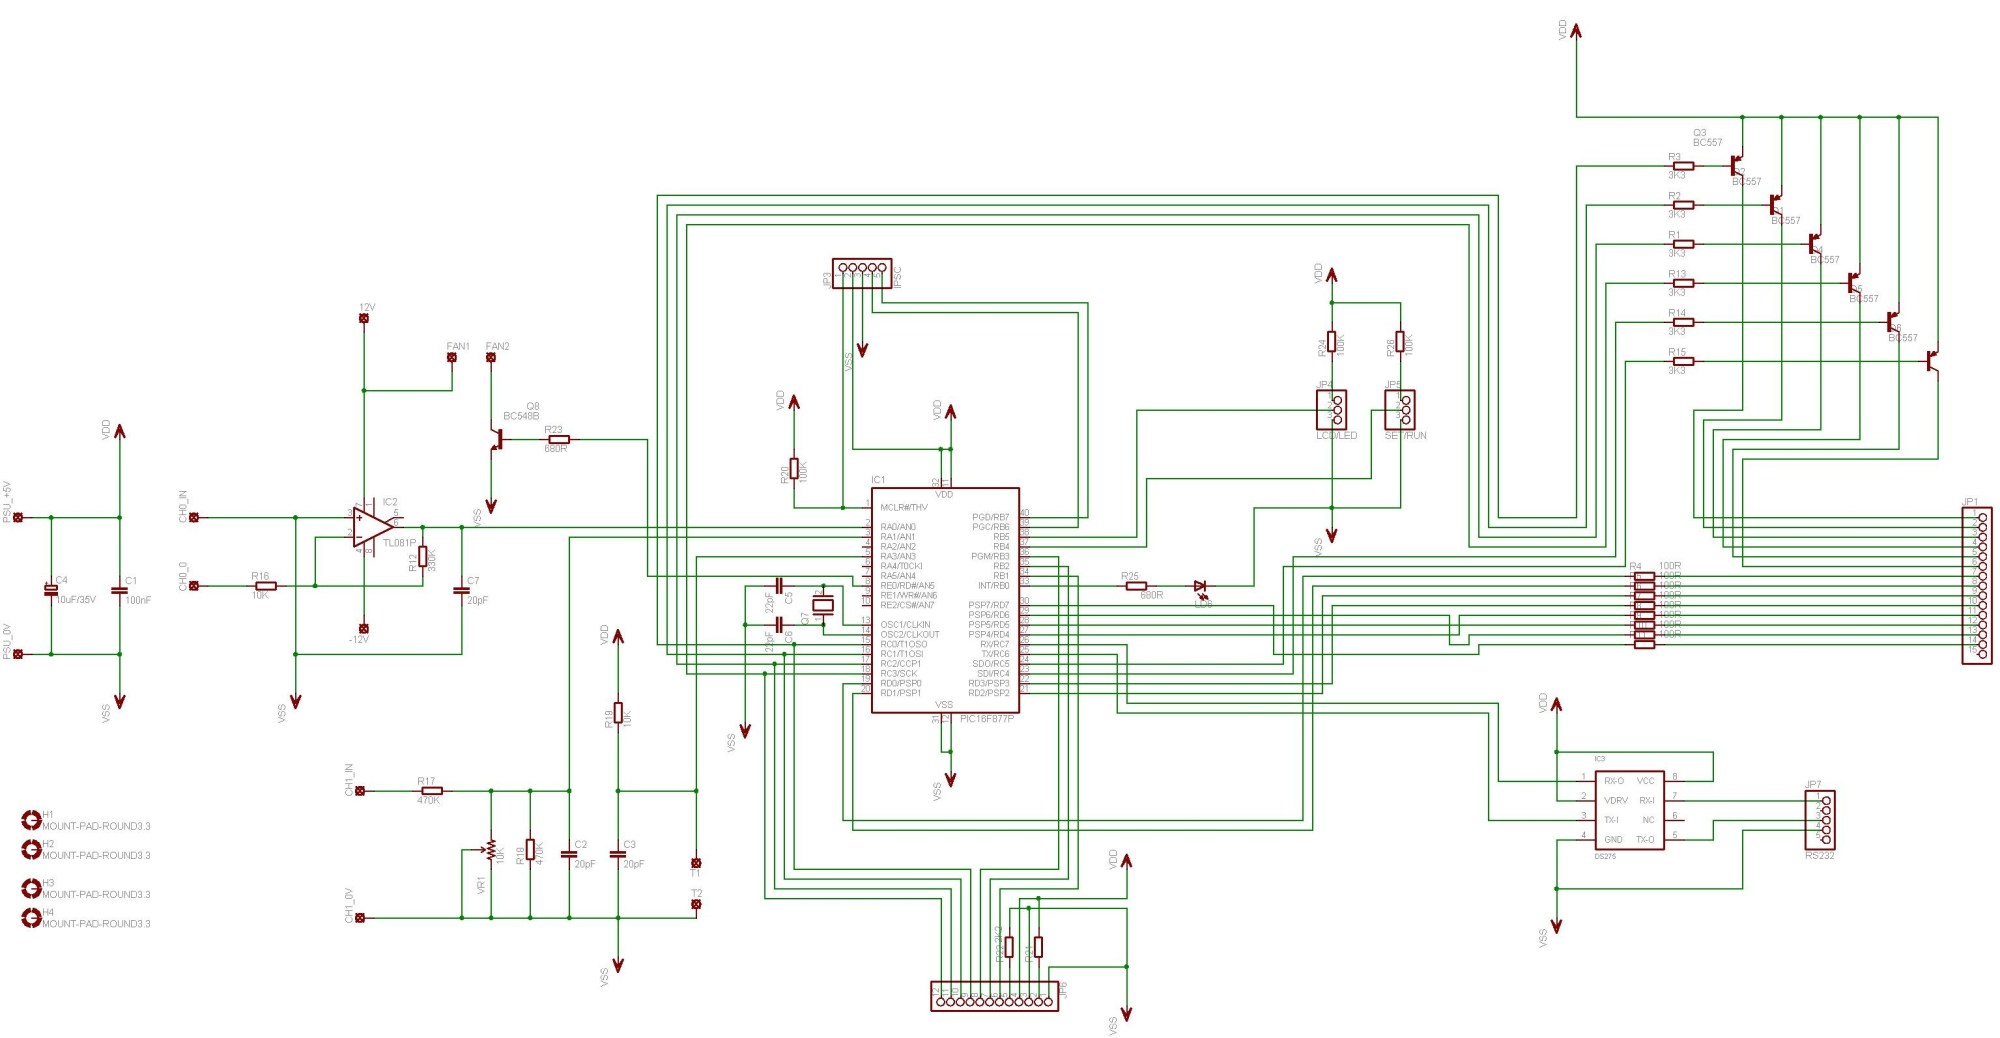 hight resolution of digital volt amp meter wiring diagram digital volt and amp meter with temperature control electronics